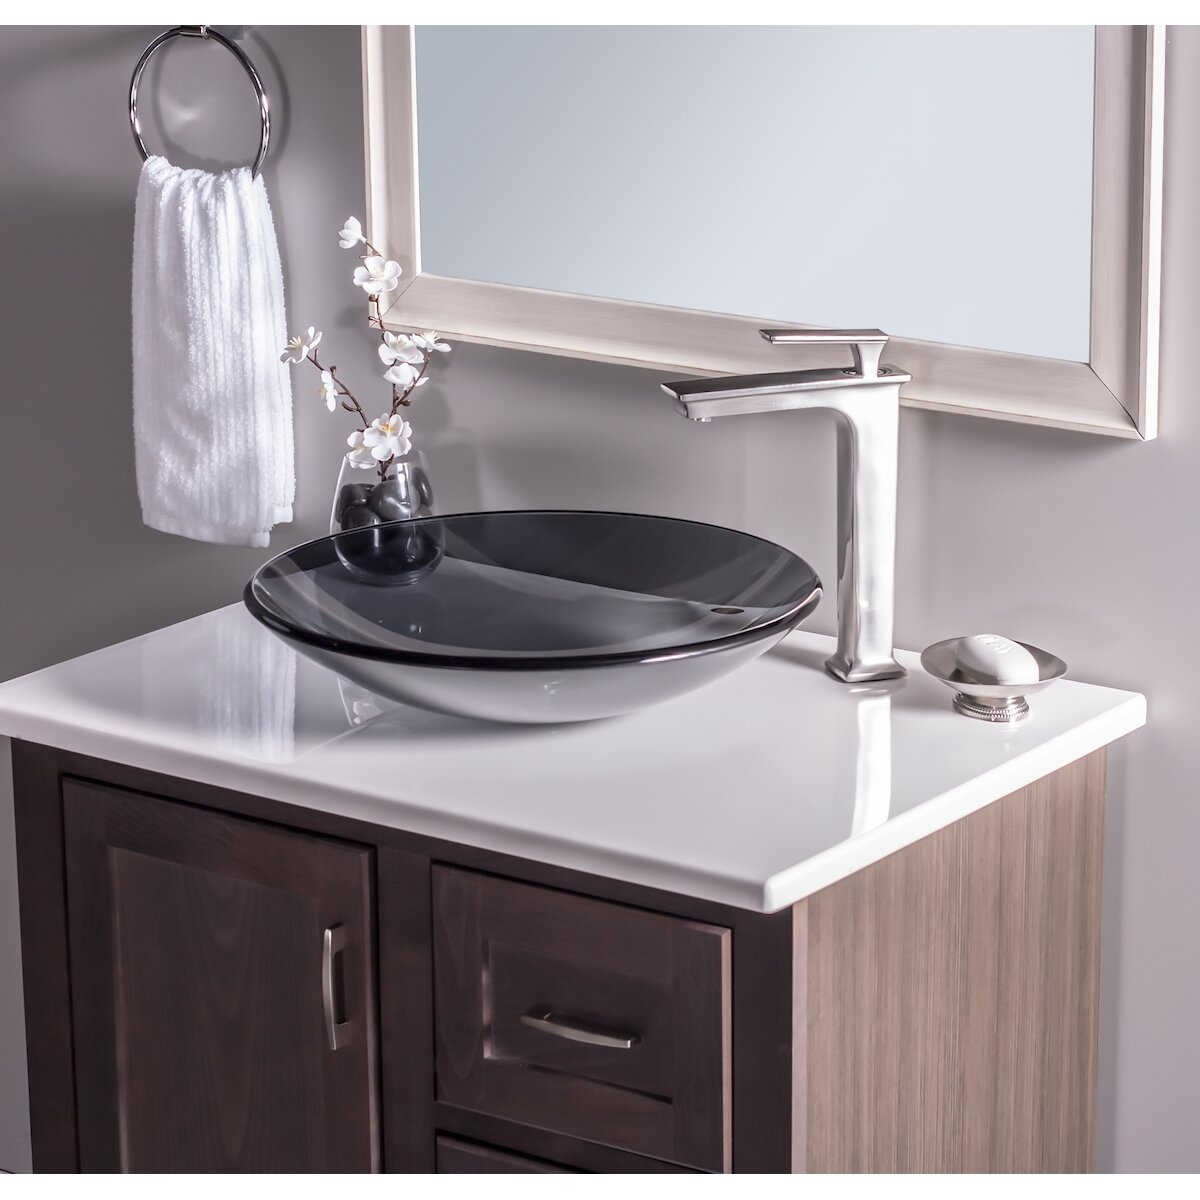 Novatto low profile glass vessel bathroom sink reviews for Low height bathtub